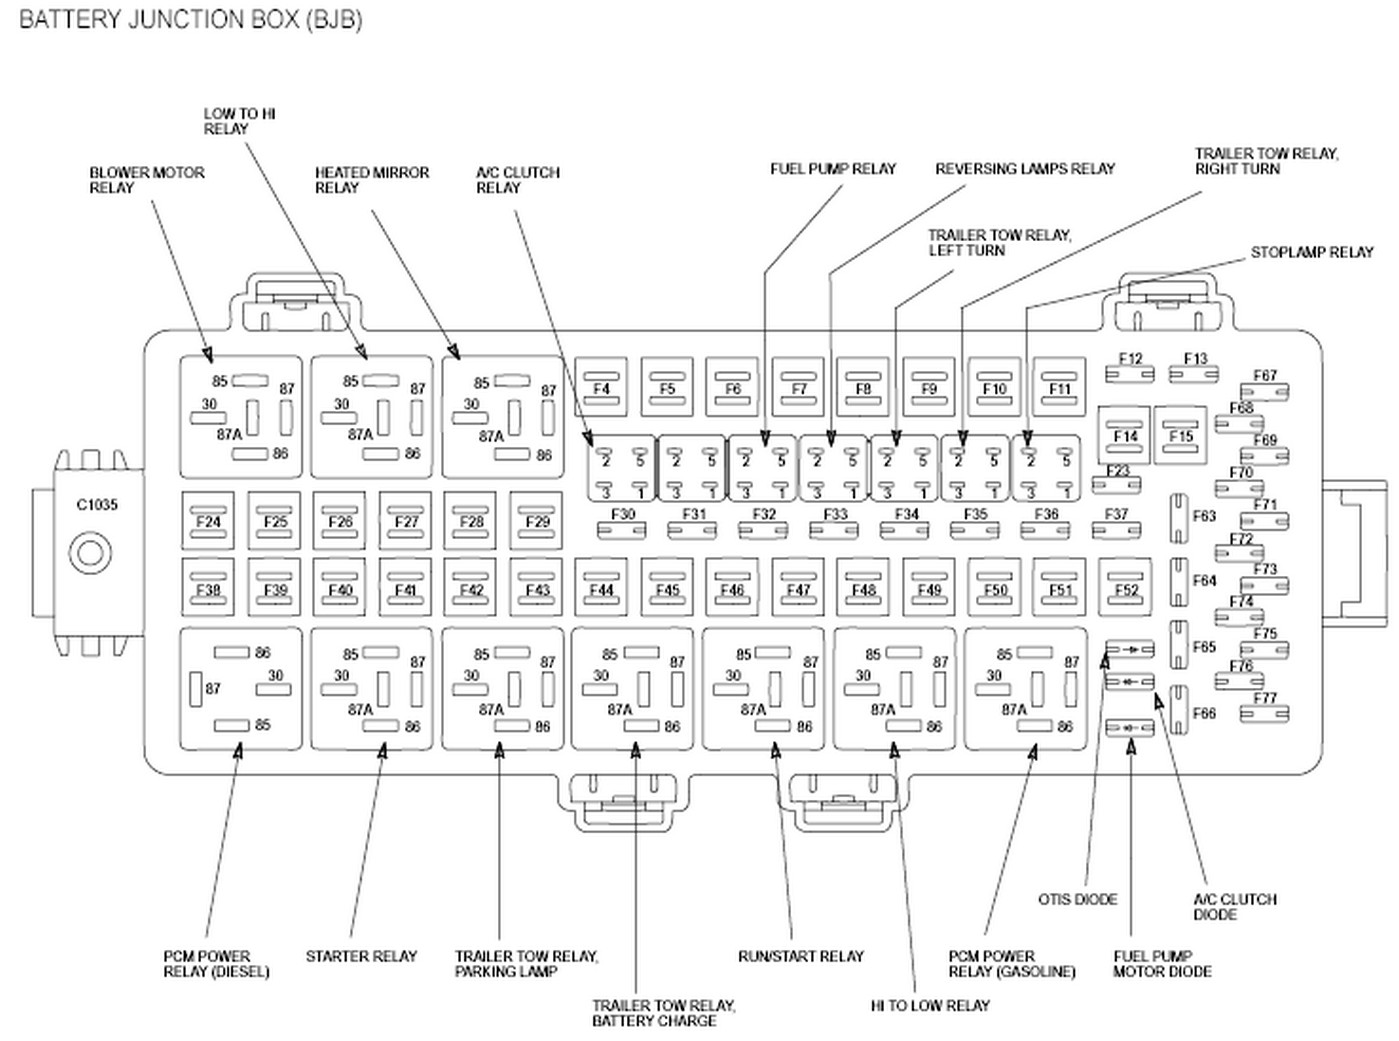 2012 F350 Fuse Box Wiring Diagram Schematics 1999 Ford F250 2011 F 350 Schematic 08